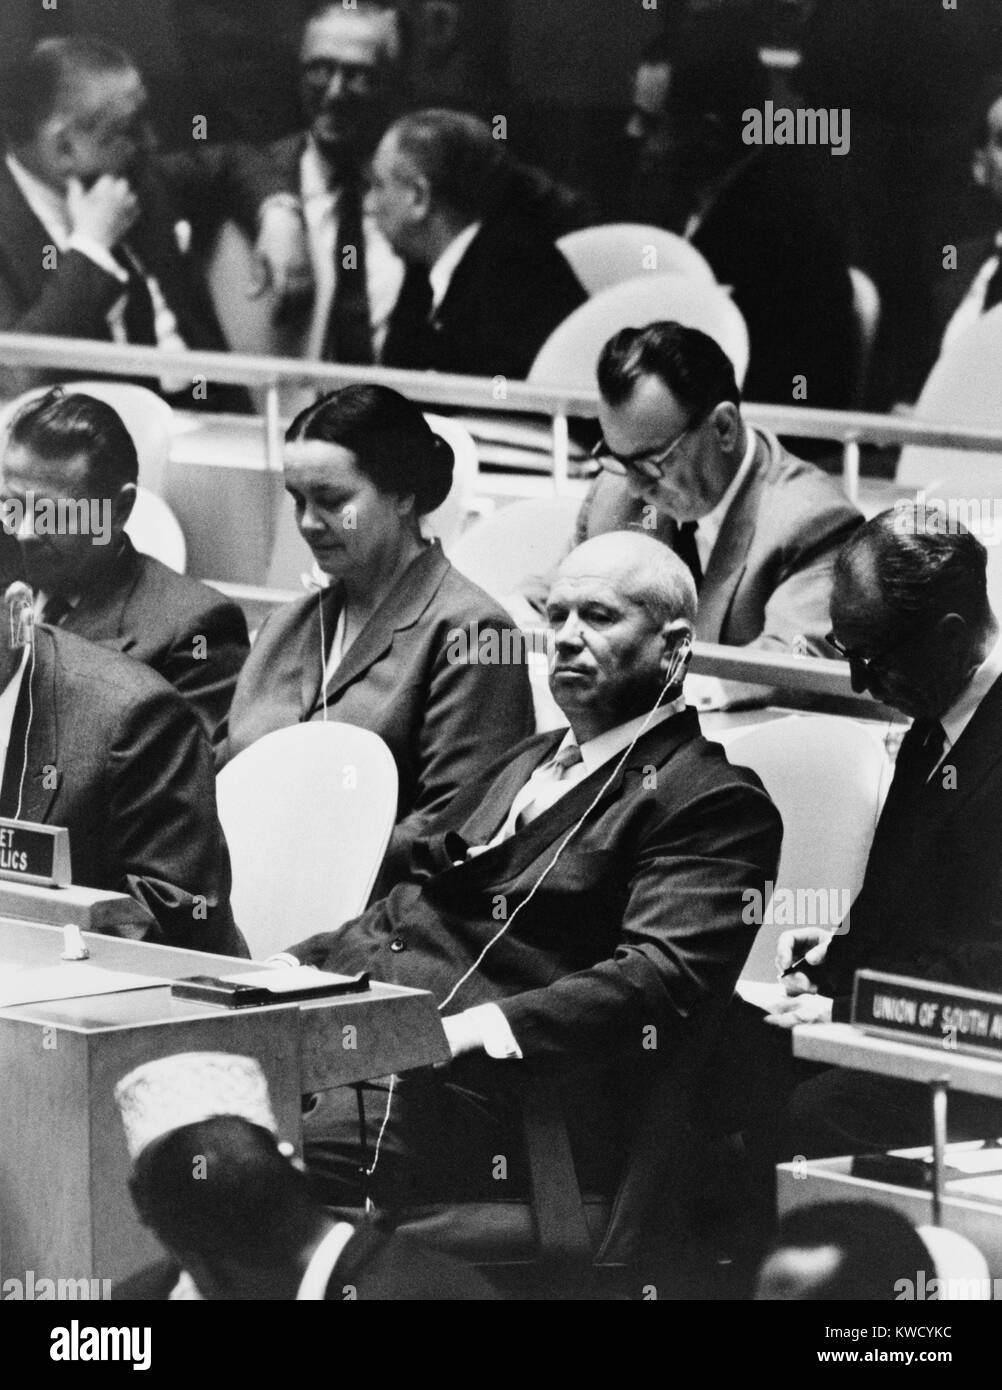 Nikita Khrushchev, leader of the Soviet Russia at the United Nations General Assembly, NYC, Sept. 22, 1960. 1960 - Stock Image